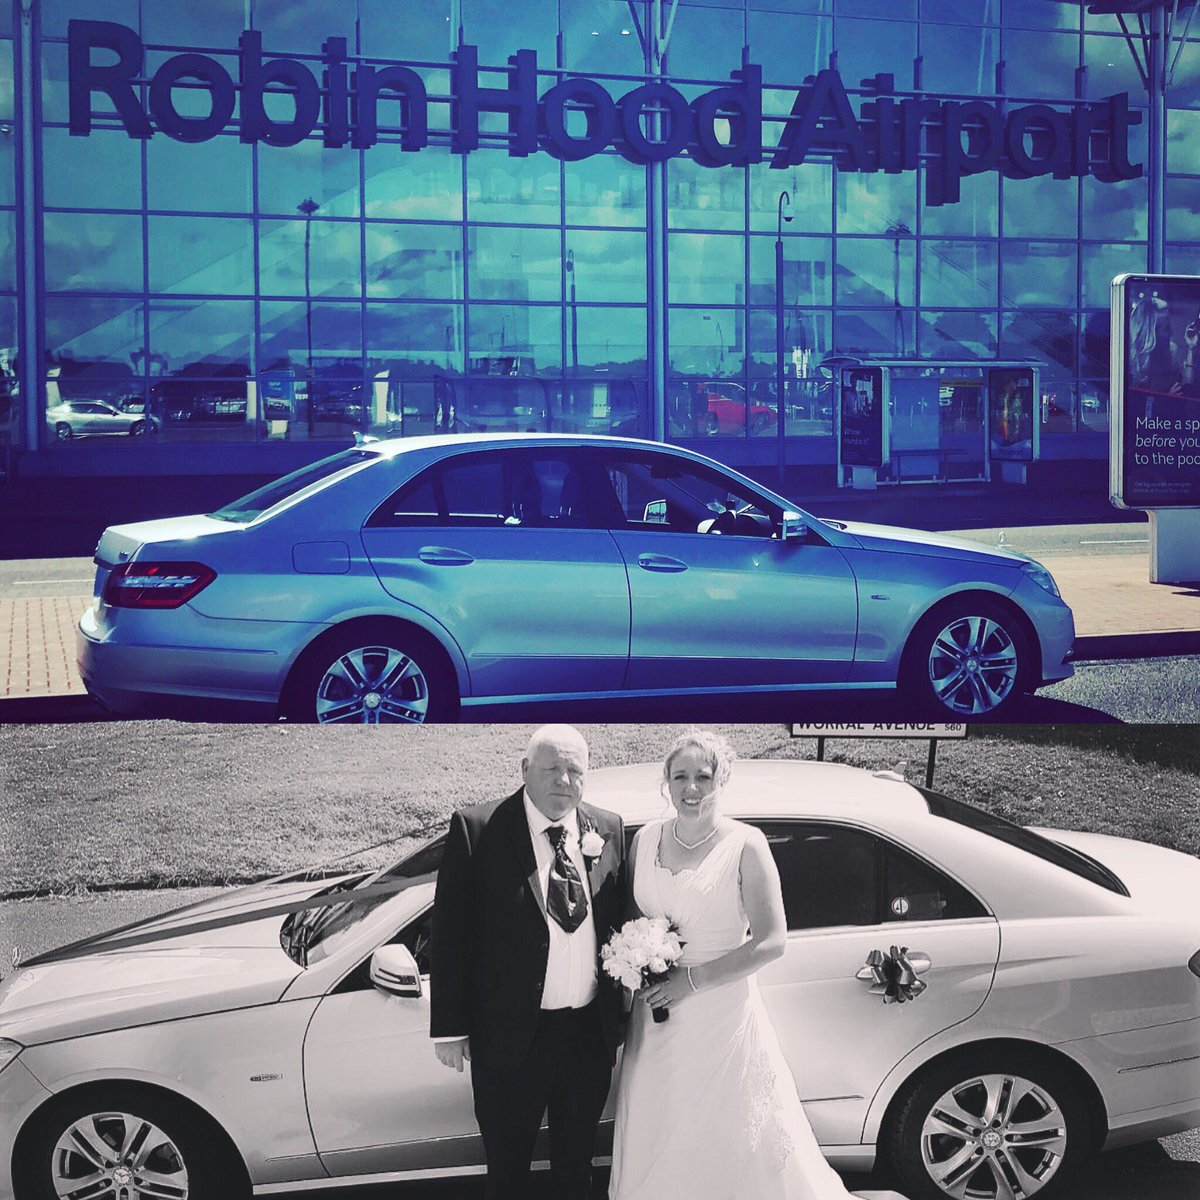 Wedding or Airport transfer cars with VIP service from £45 #sheffieldissuper #sheffield #google #leeds #harrogate #chief<br>http://pic.twitter.com/GcDN3IhyV9